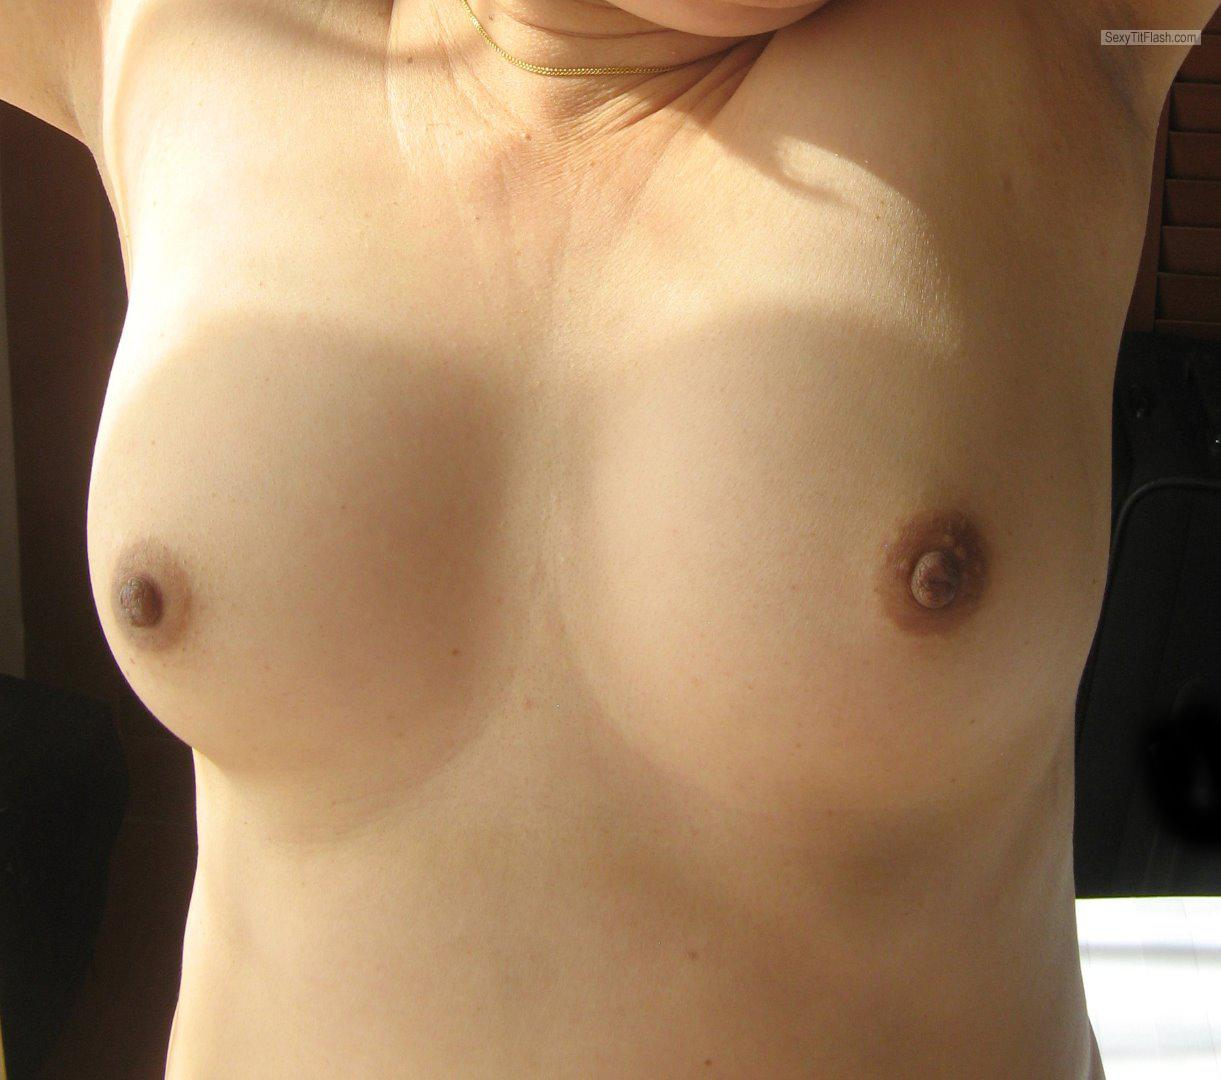 Tit Flash: My Small Tits - YY from United States